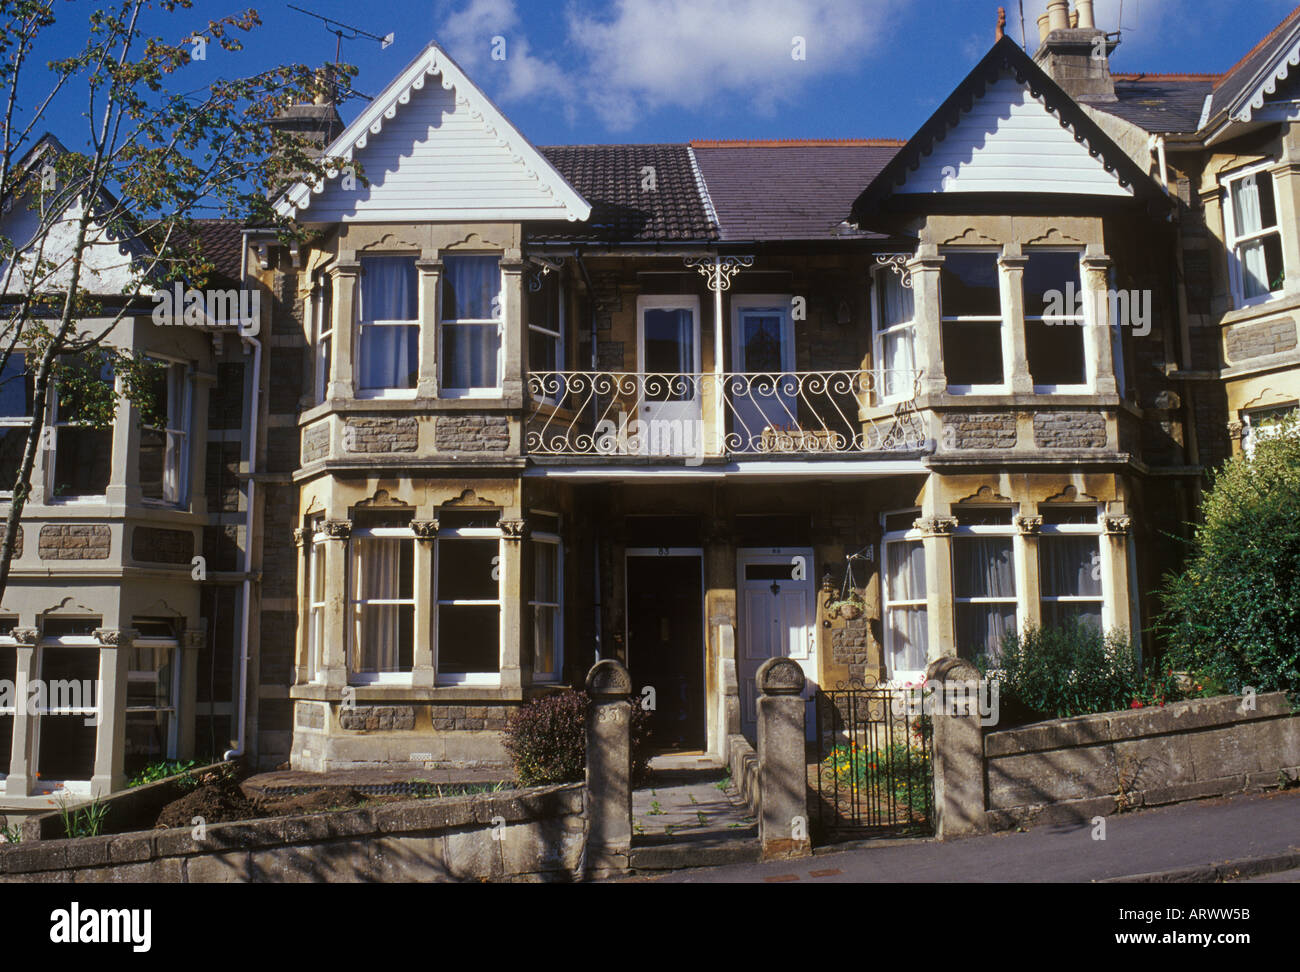 Houses With Bay Windows bath, somerset, england. edwardian stone terrace houses with bay